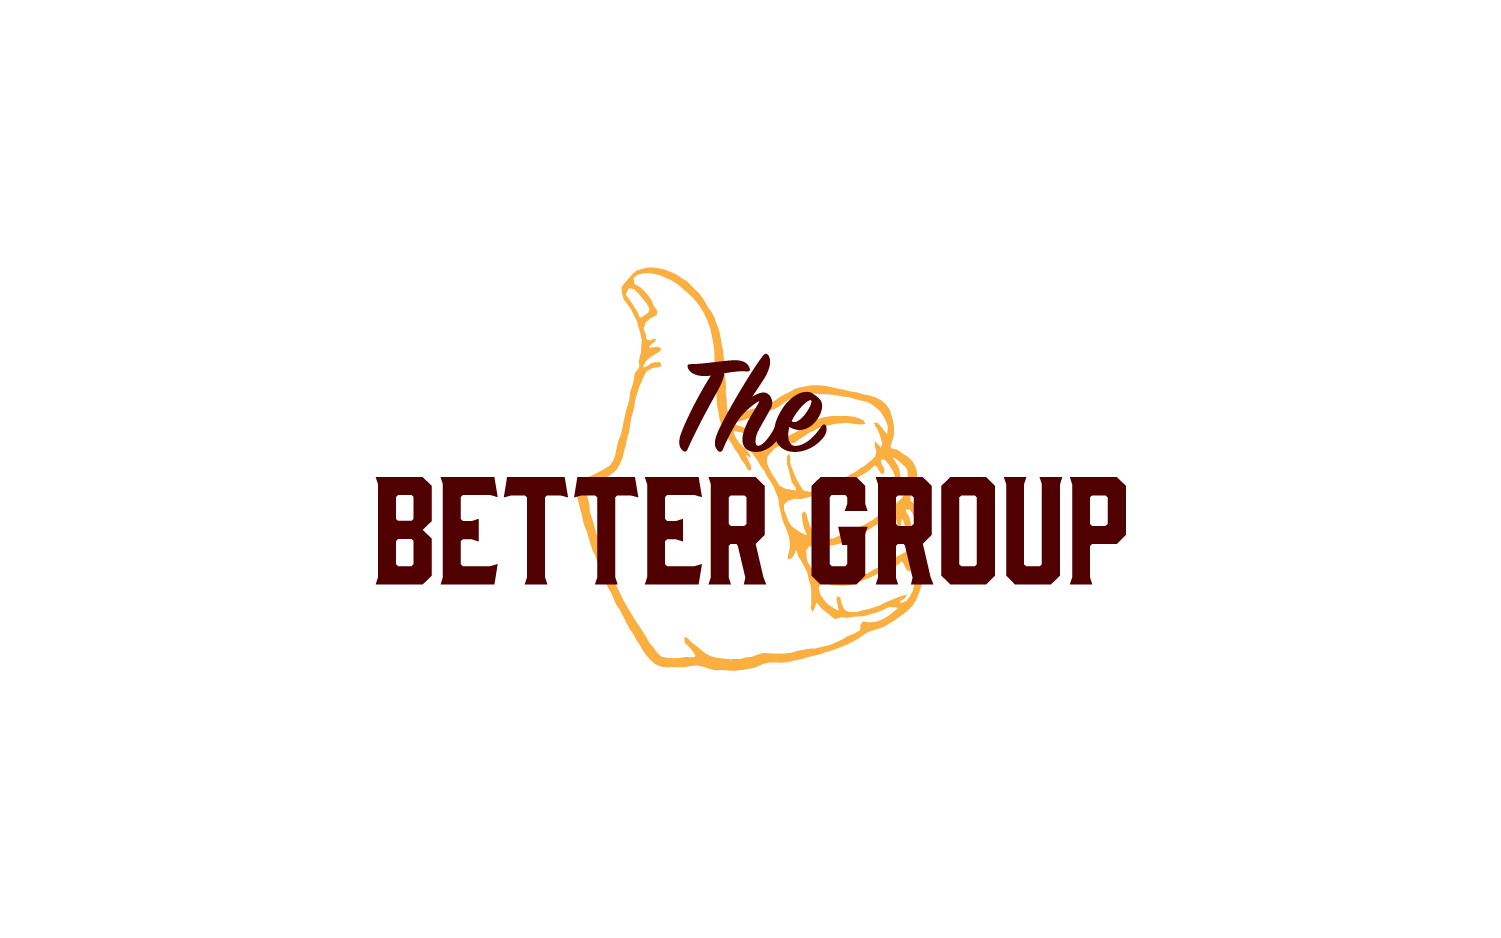 The Better Group, non-profit logo and branding presentation